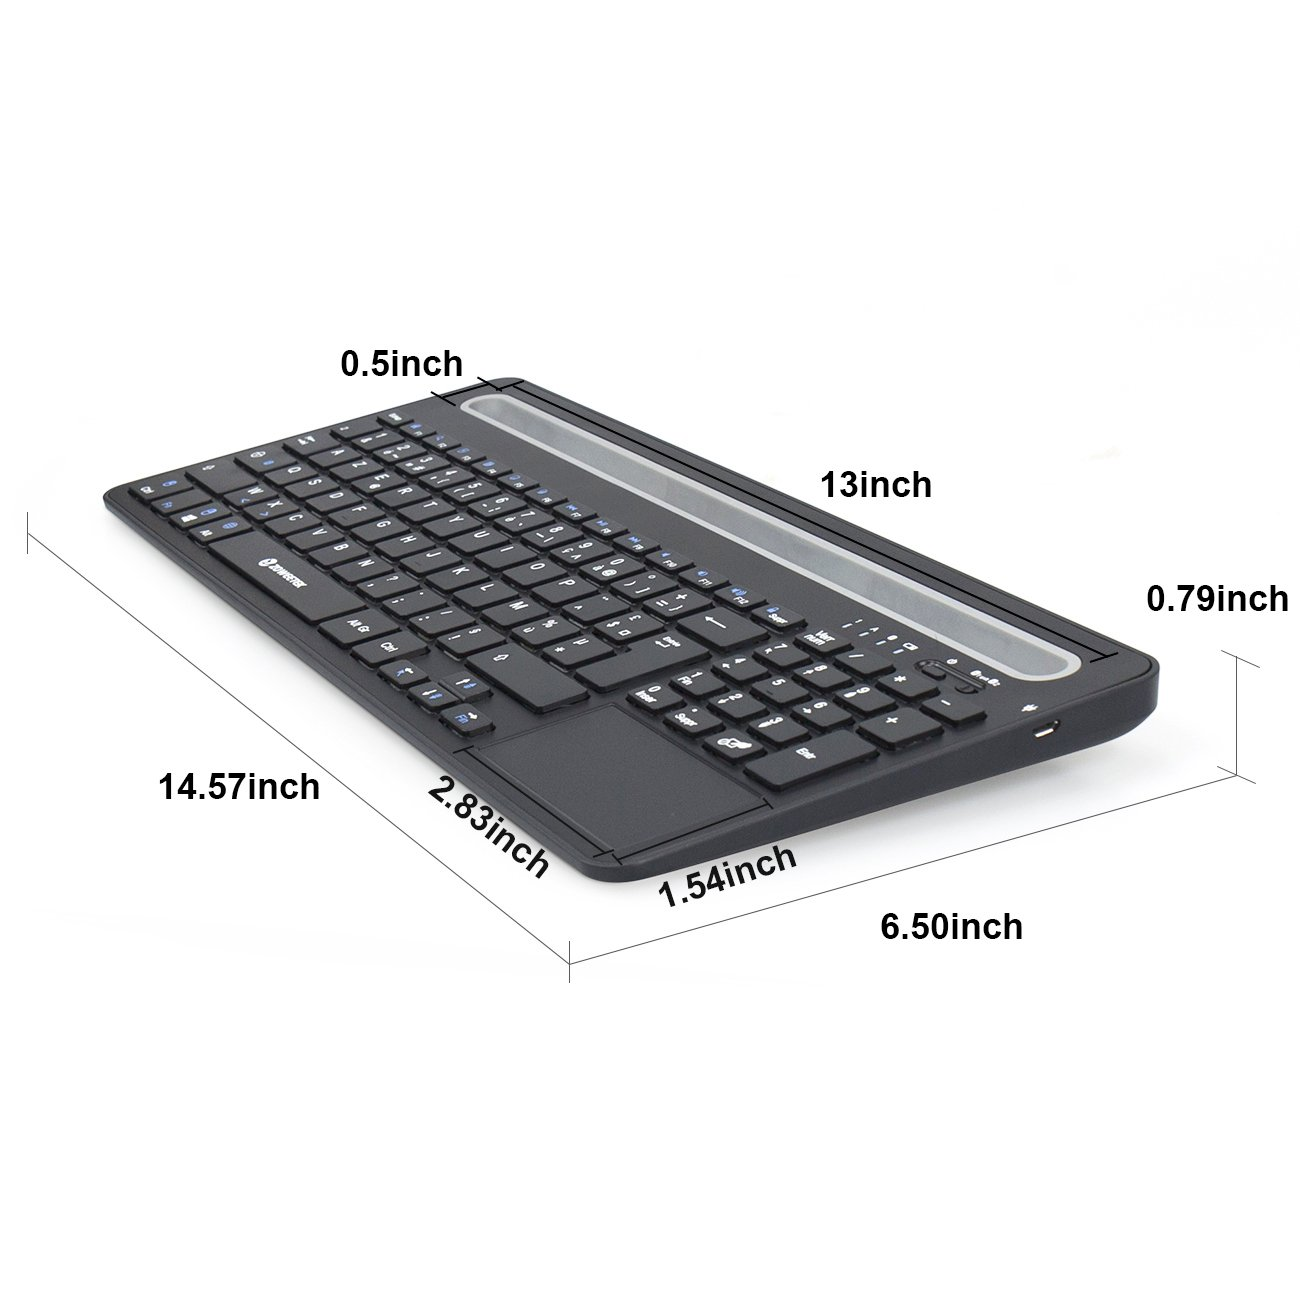 Zoweetek Rechargeable Wireless Bluetooth Keyboard with Touchpad and Numeric Keypad for Windows, Mac OS, Android, IOS, Tablet and Smart Phone